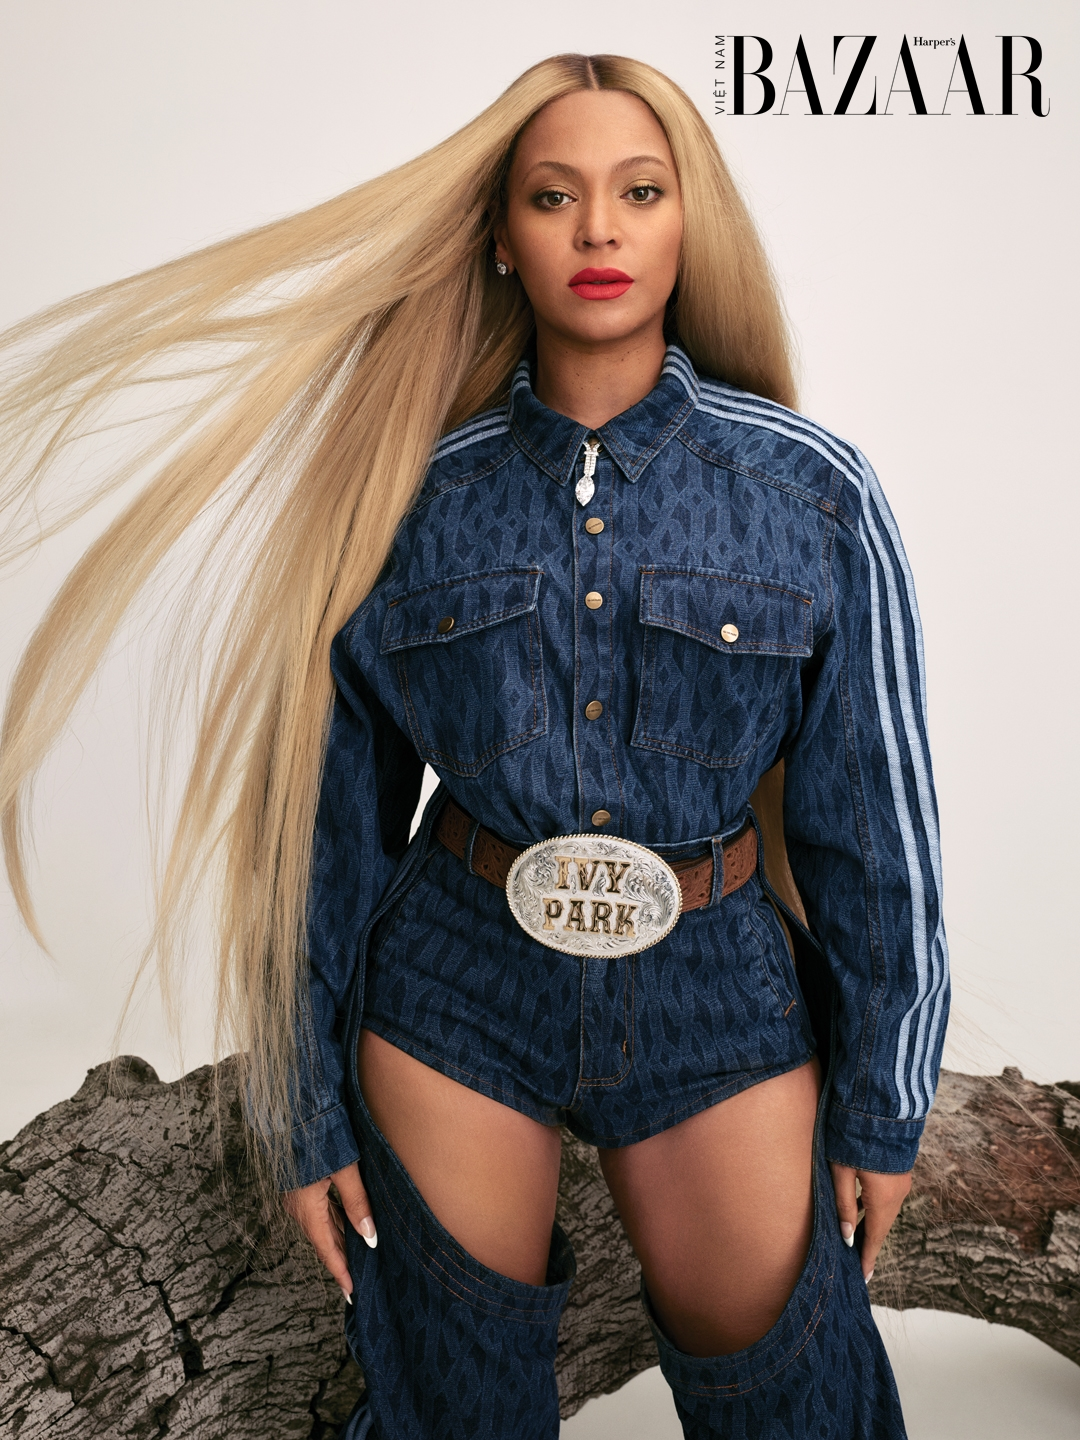 HBZ090121WELLCoverStory_011_beyonce